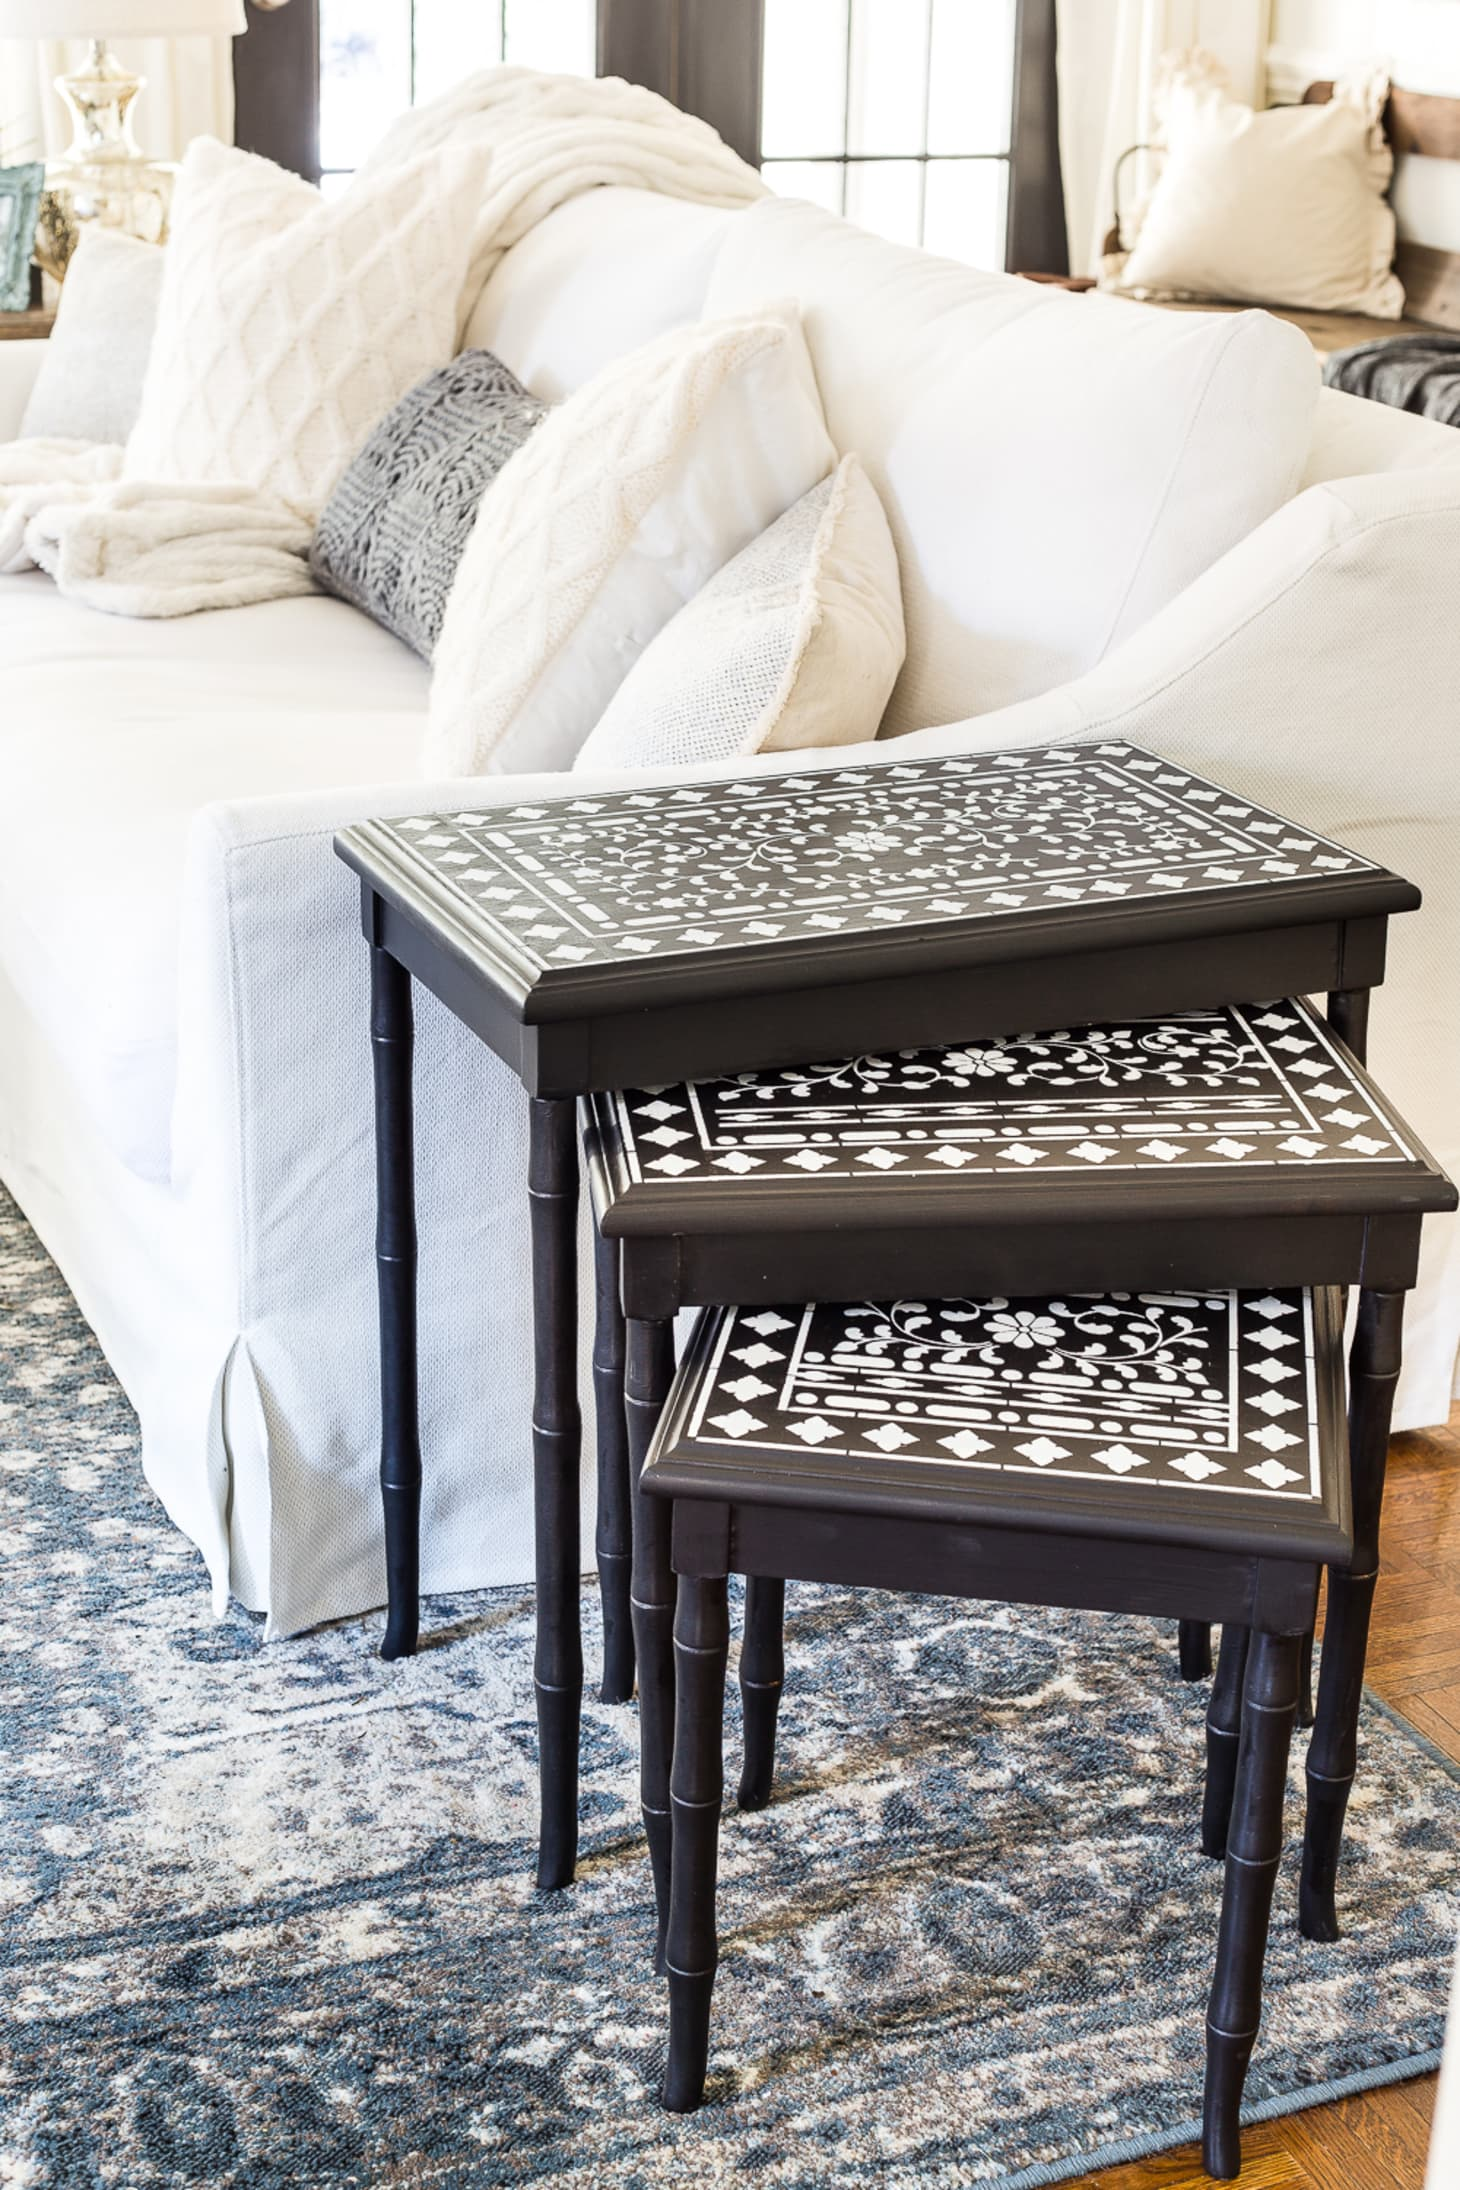 Groovy Bone Inlay Budget Diy Furniture Projects Apartment Therapy Beutiful Home Inspiration Cosmmahrainfo